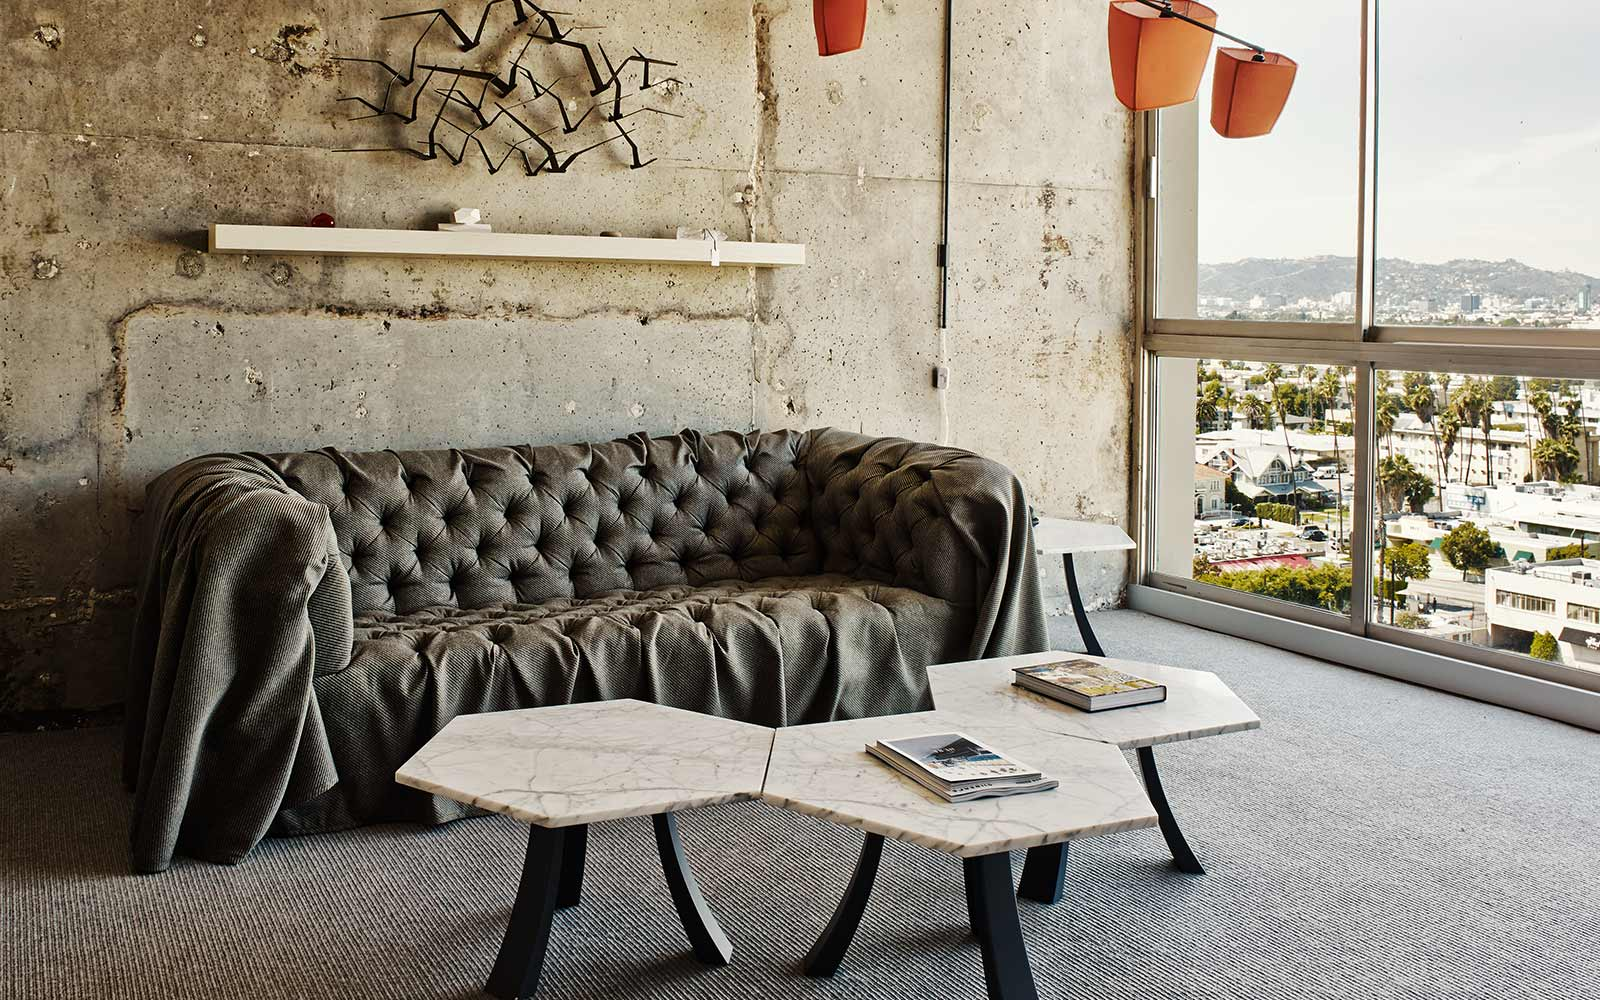 The Line Hotel - Room / Knibb Design (6)